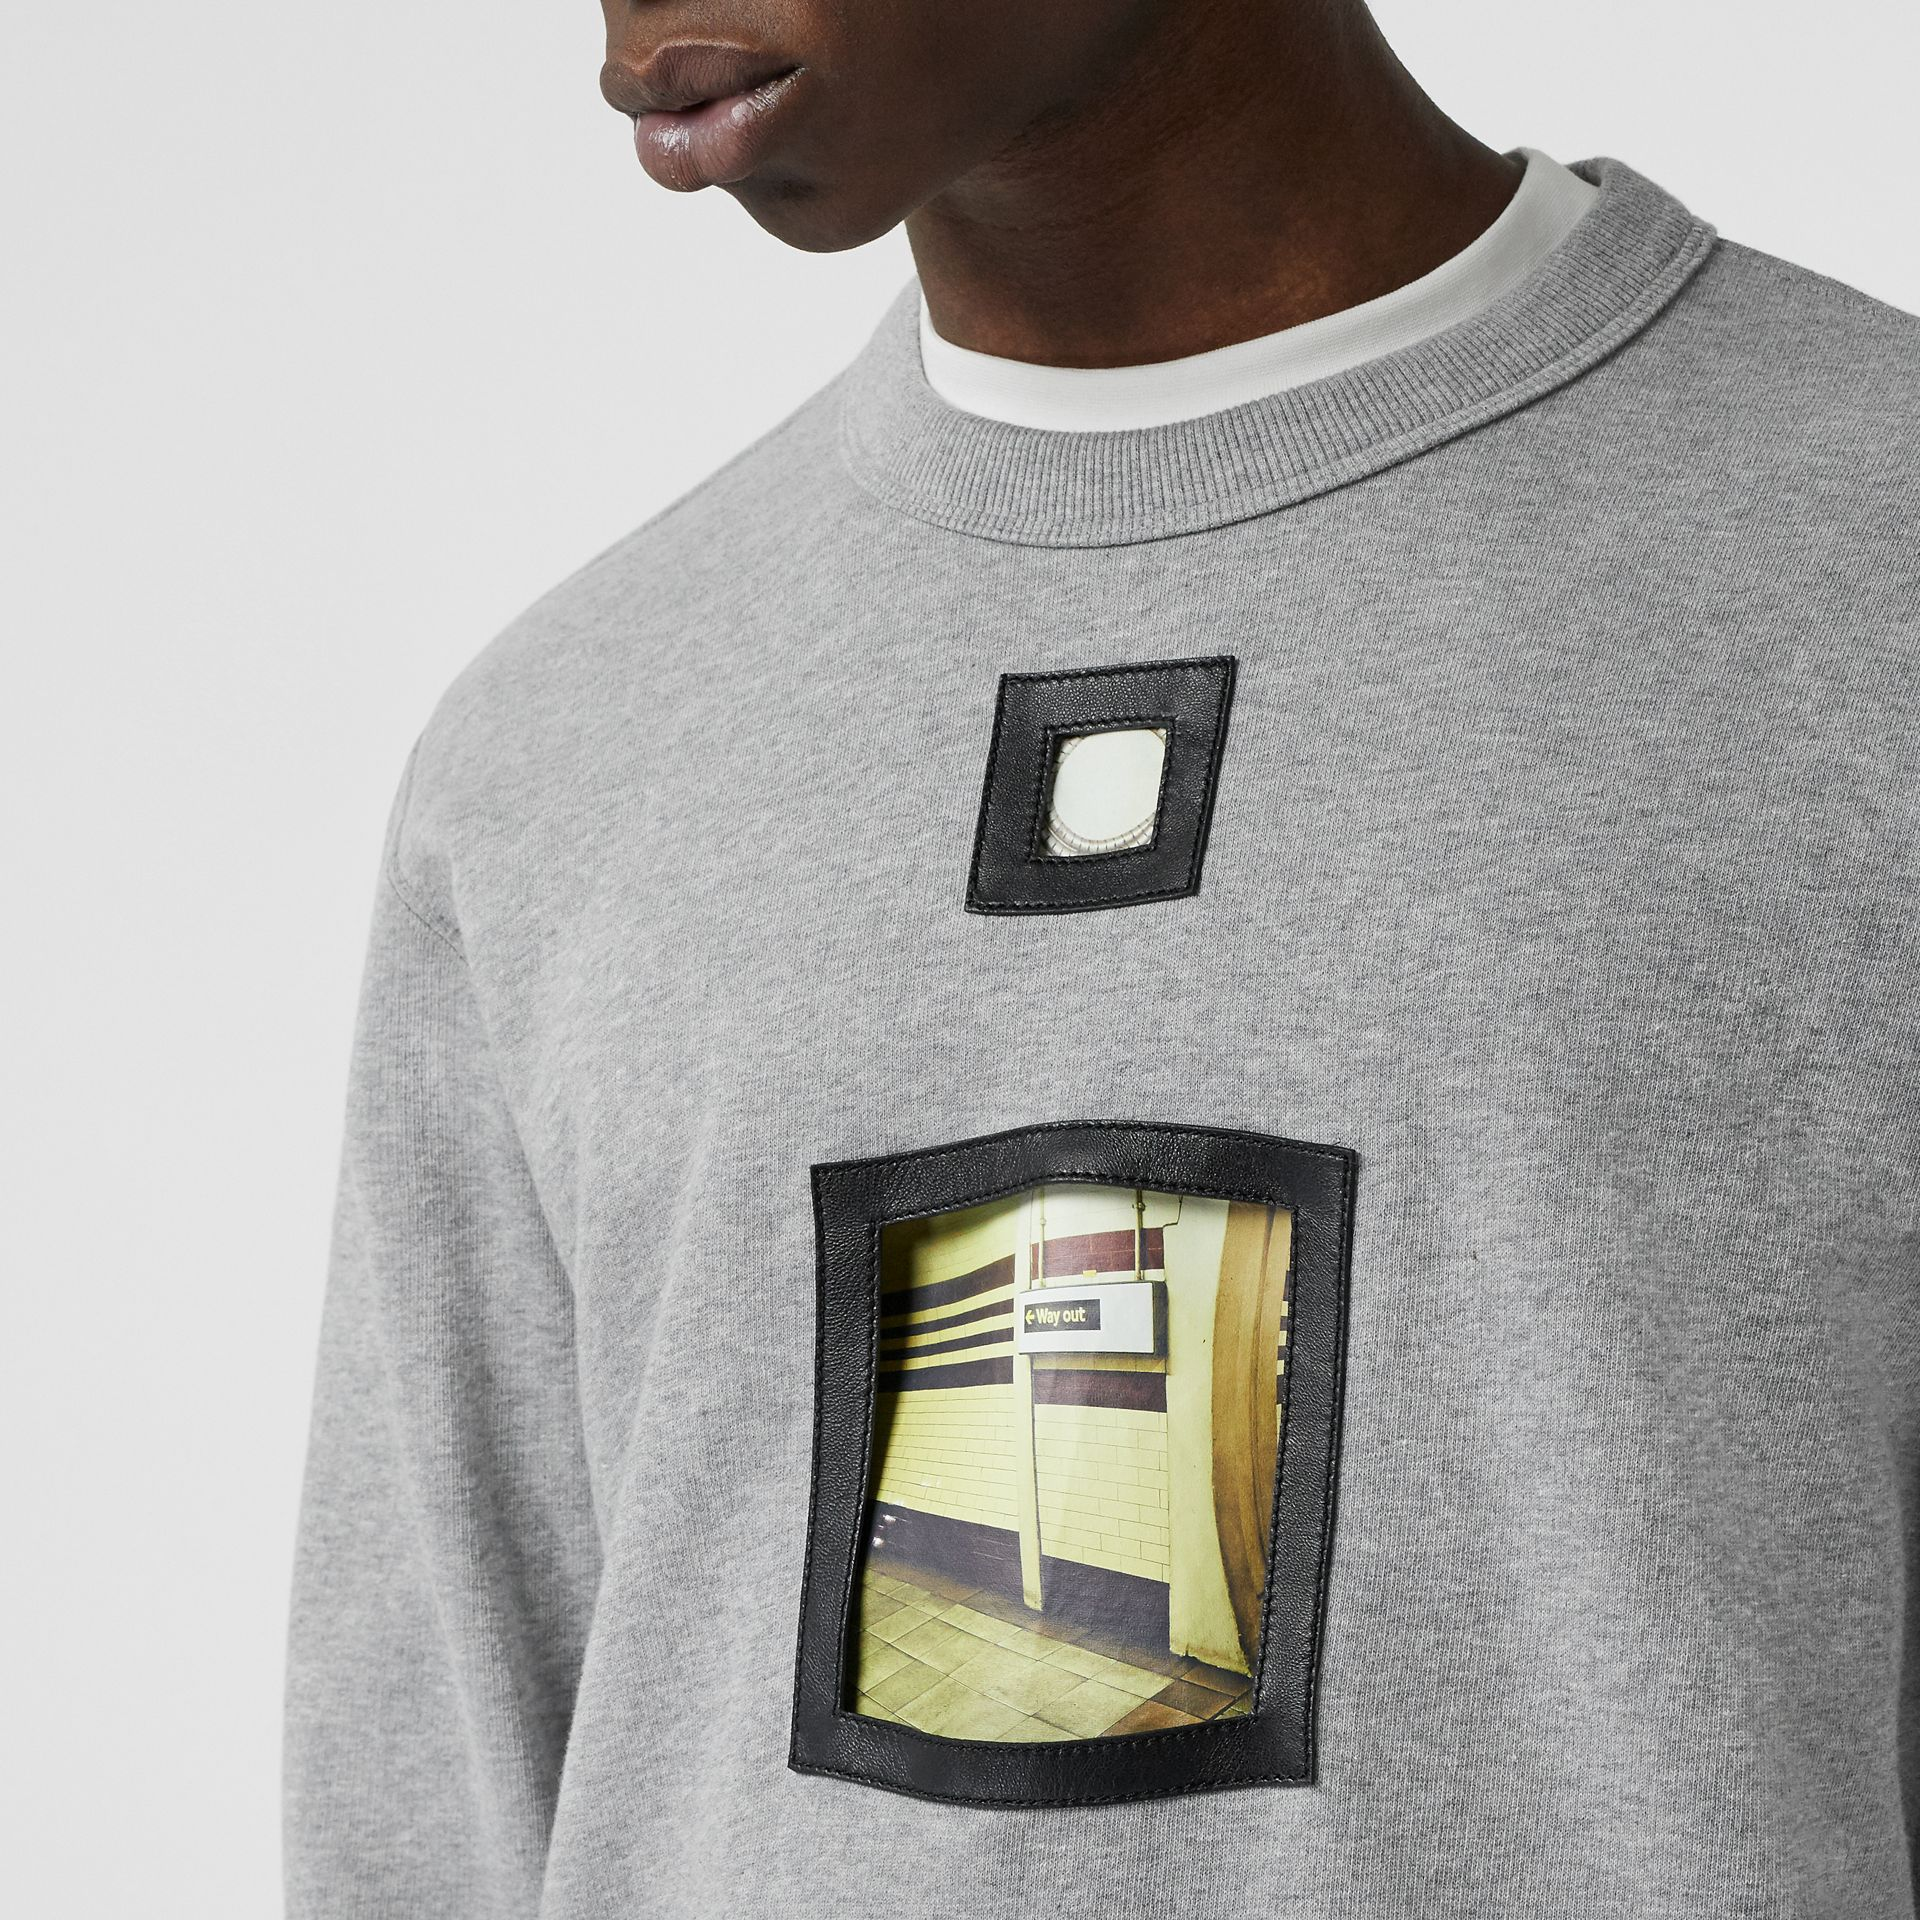 Cut-out Detail Cotton Sweatshirt in Pale Grey Melange - Men | Burberry - gallery image 1